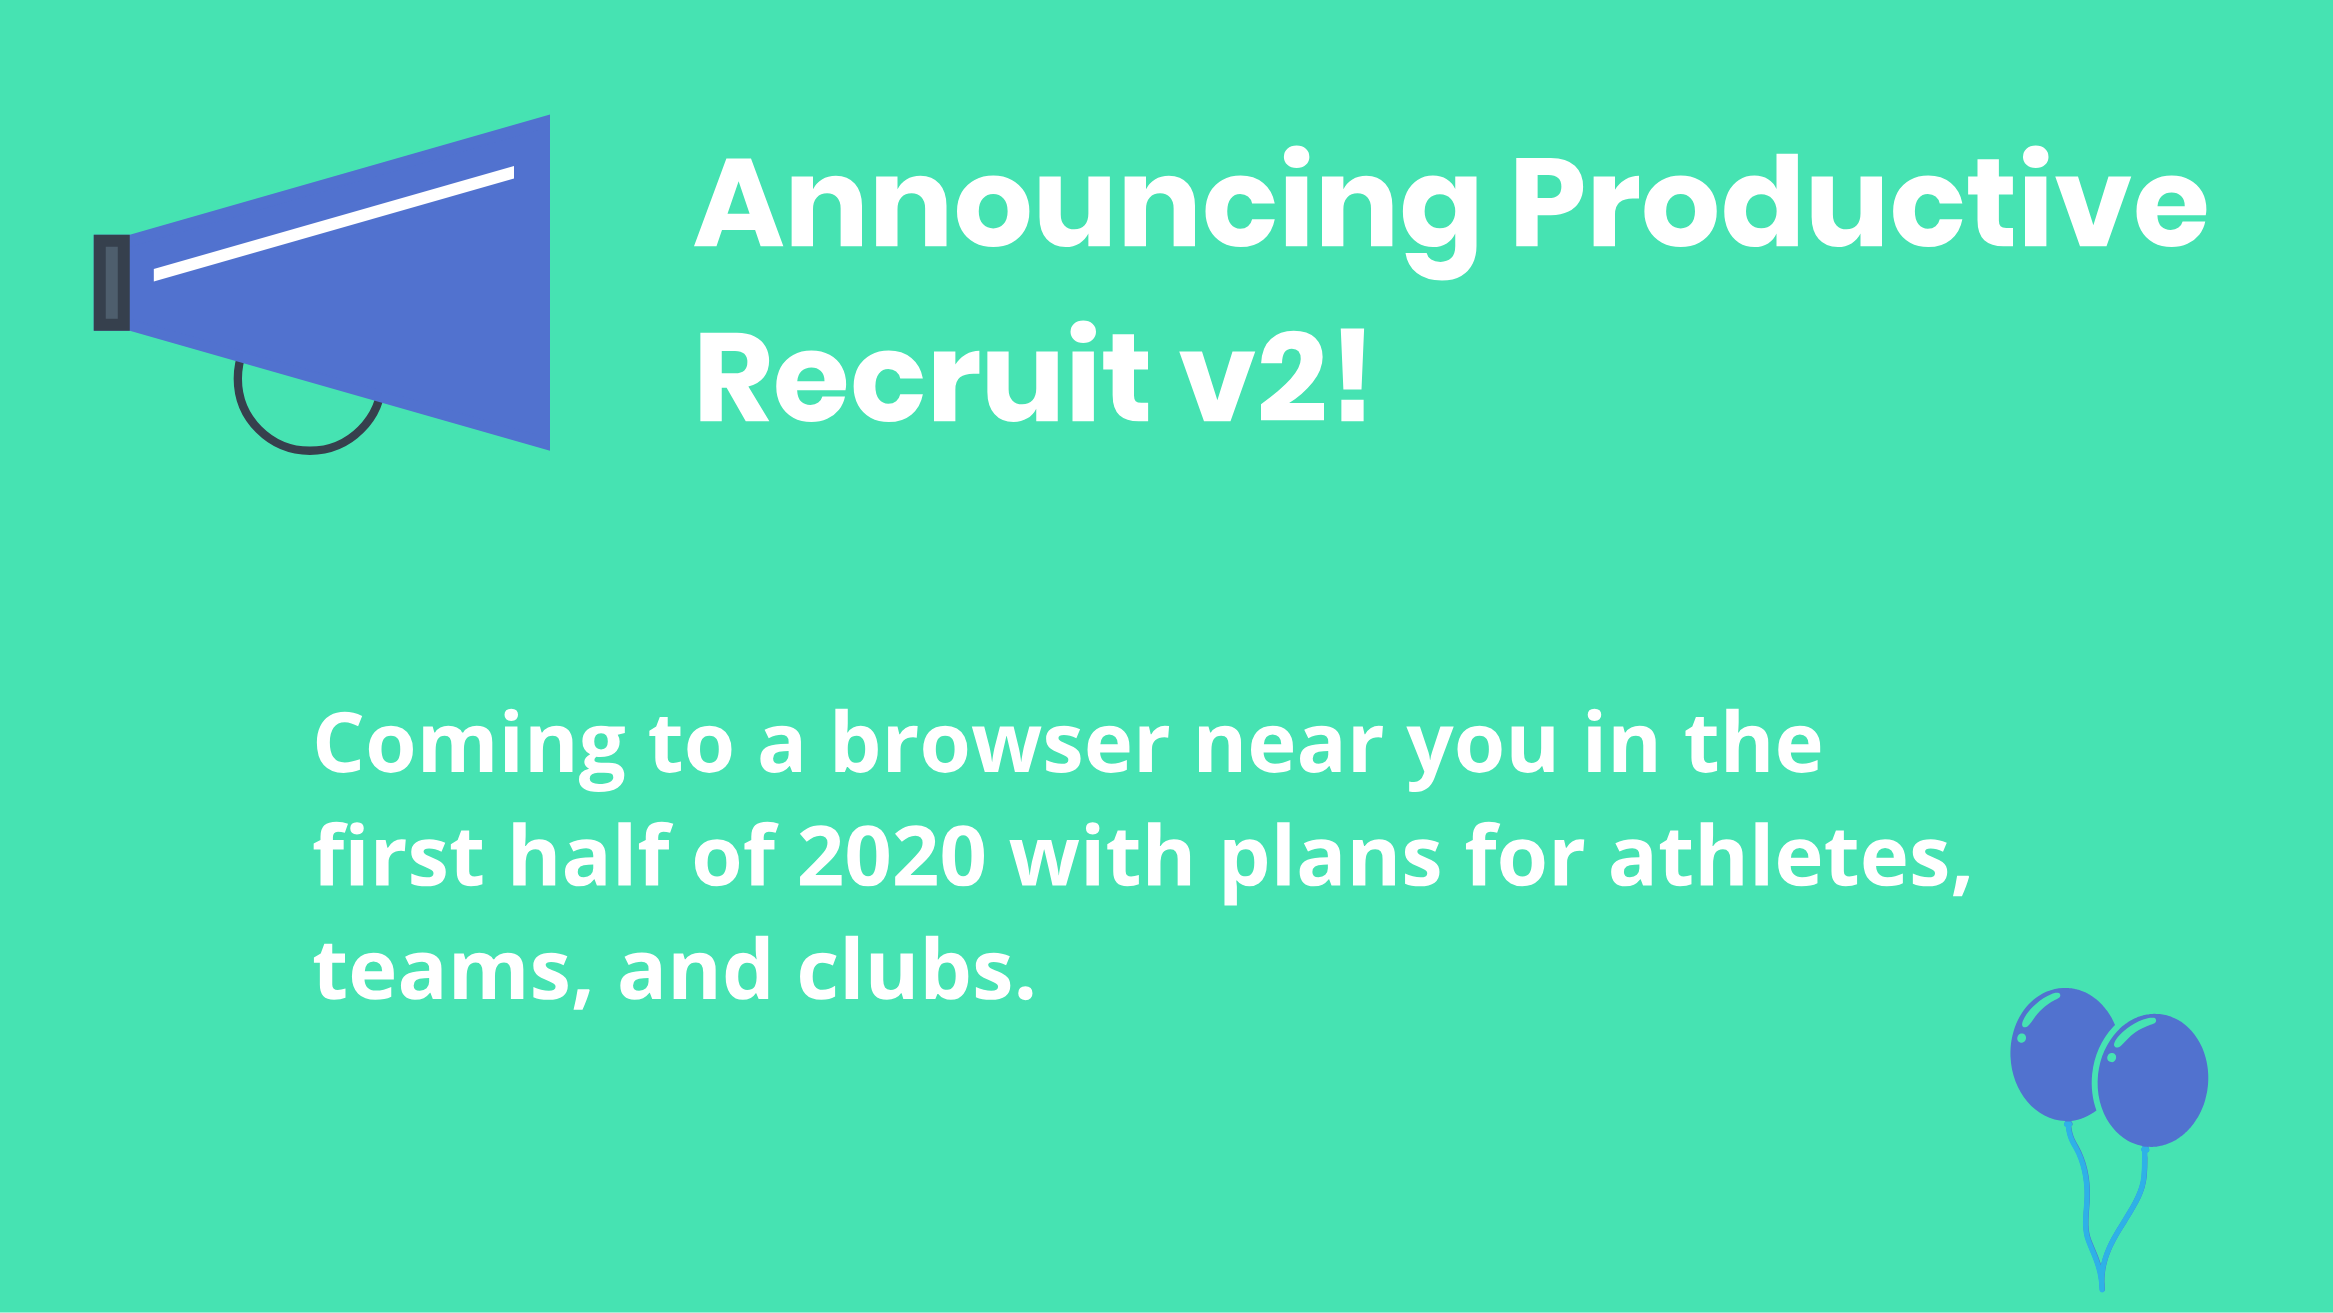 Image for Announcing Productive Recruit v2